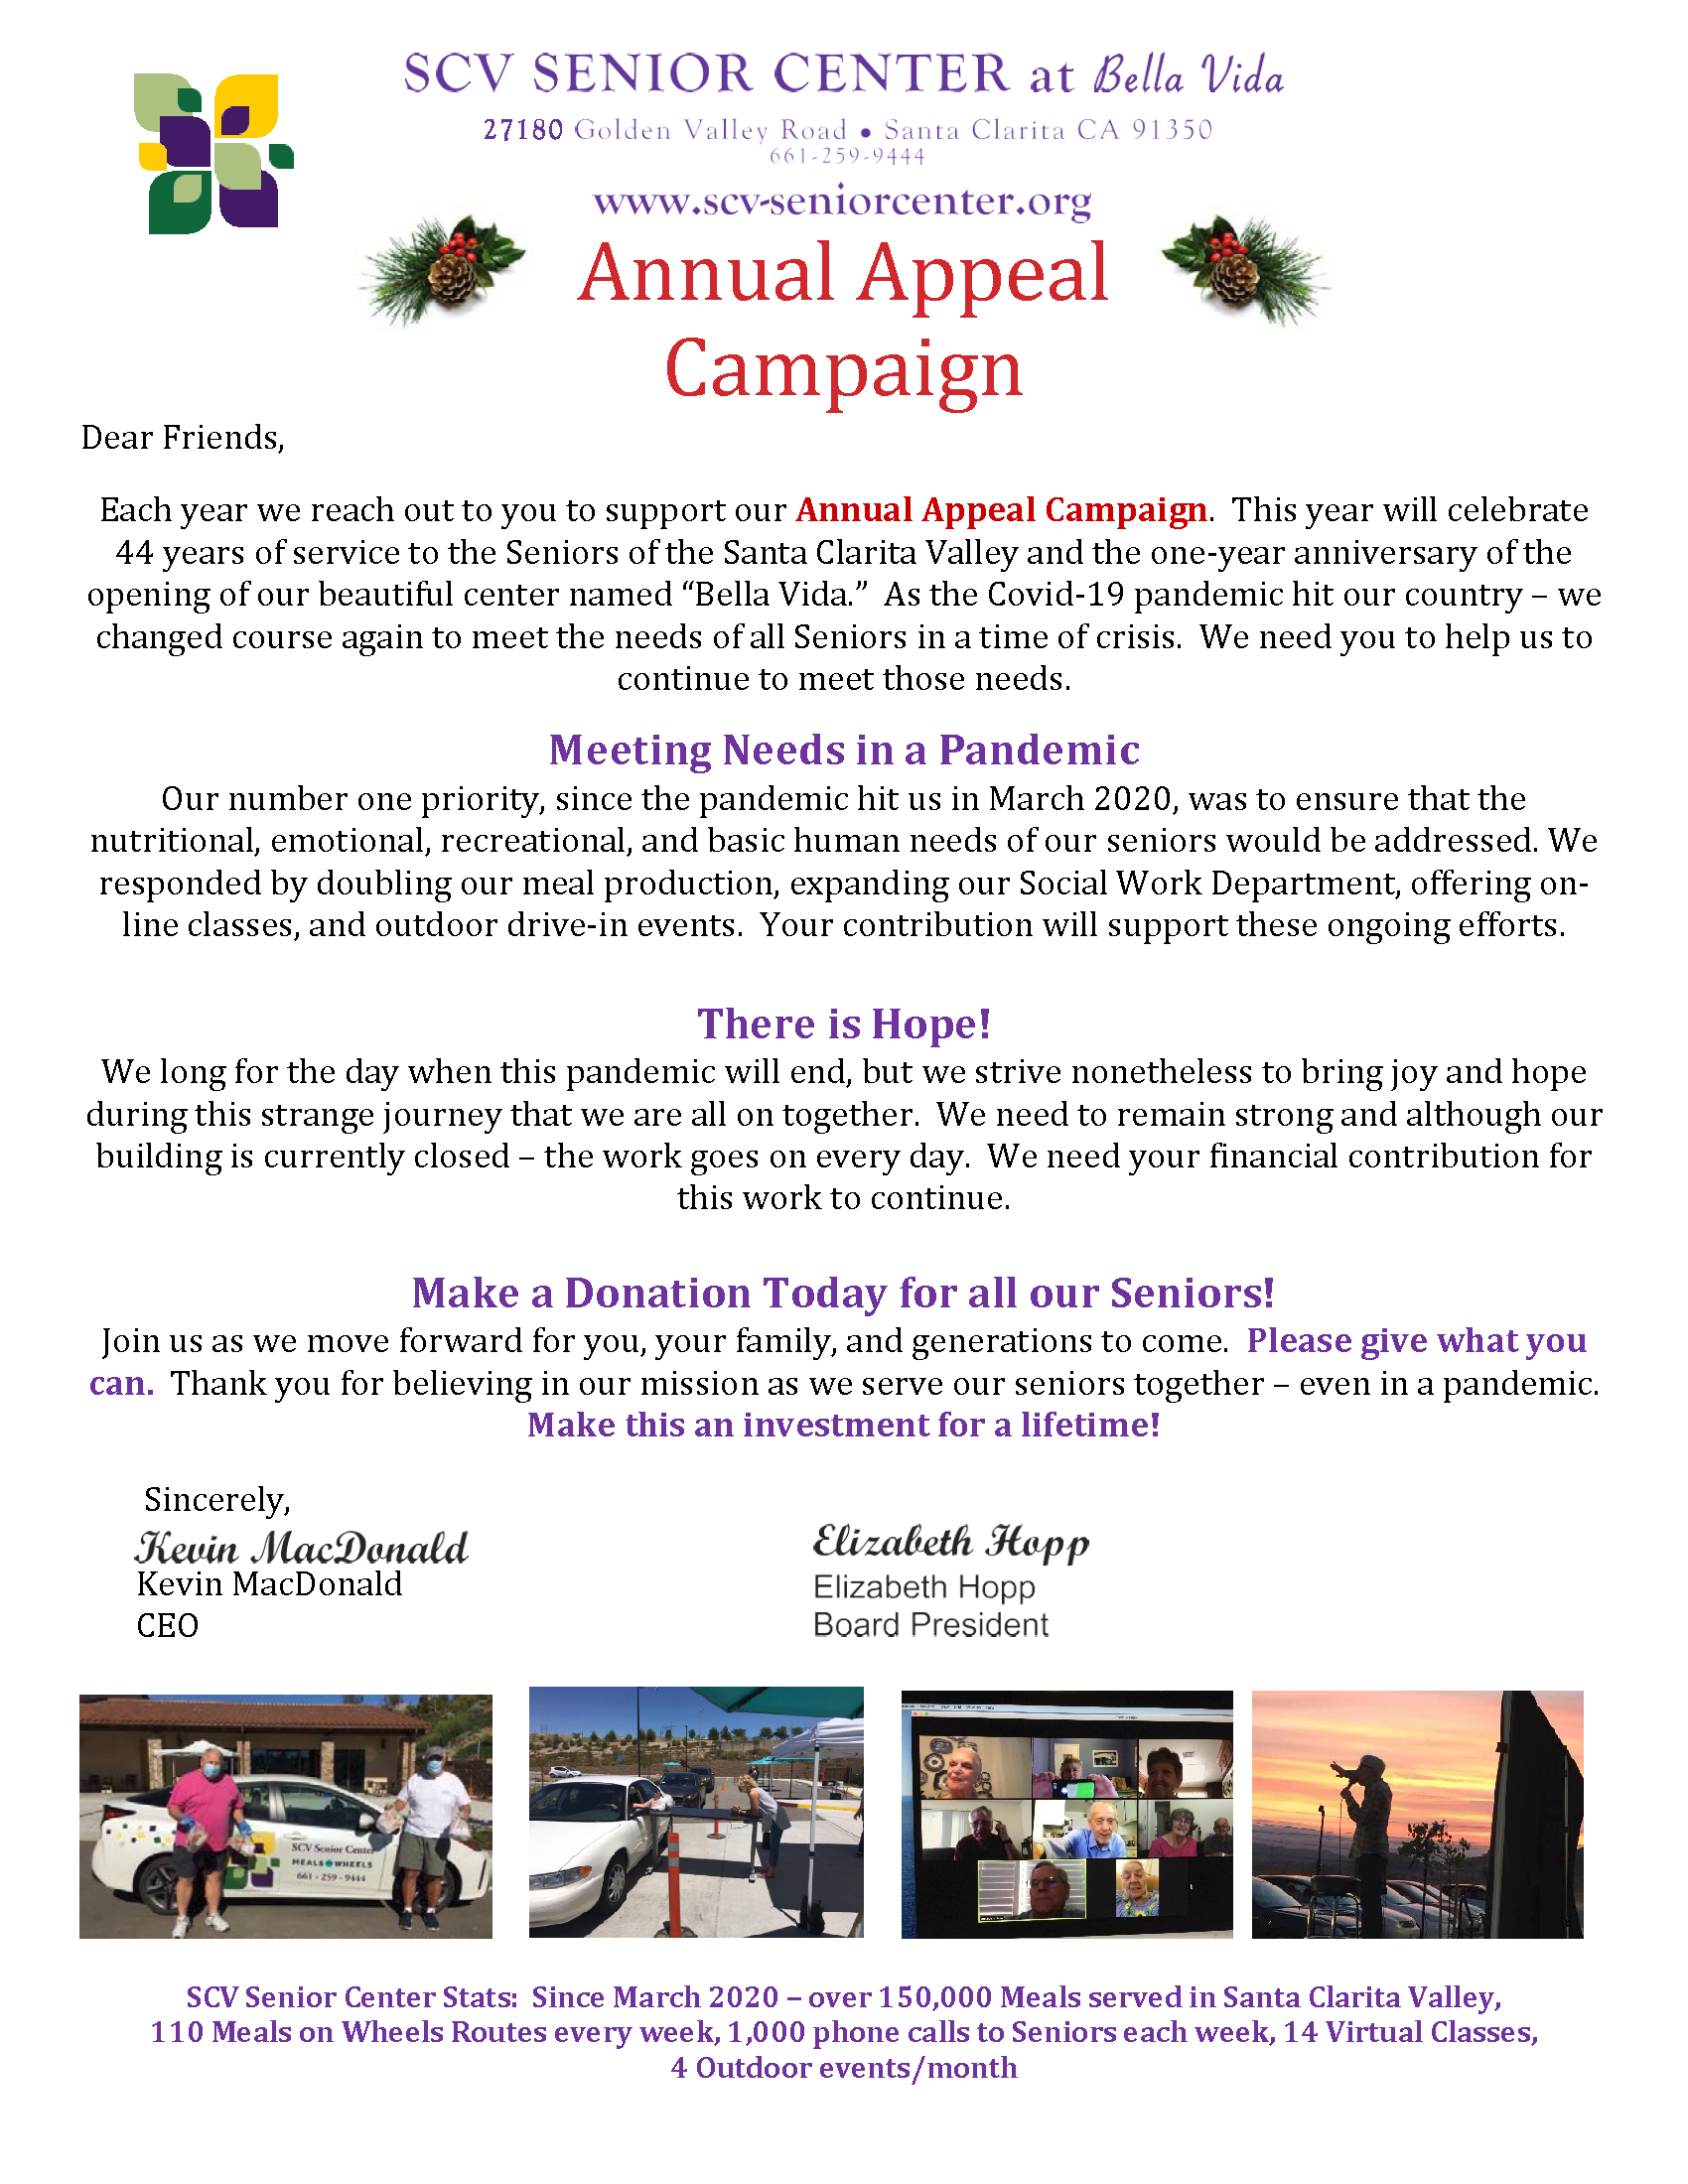 2020 Annual Appeal letter